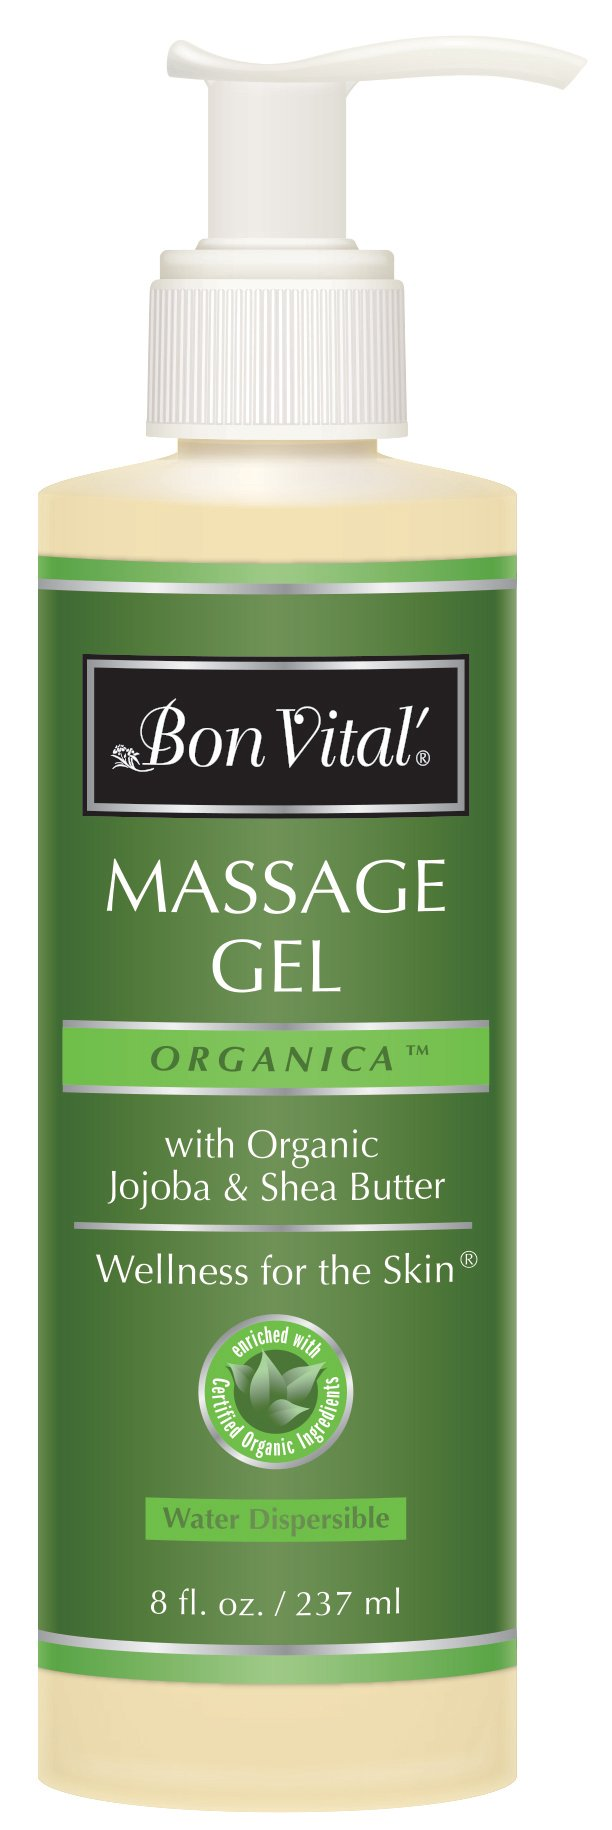 Bon Vital' Organica Massage Gel Made with Certified Organic Ingredients for Earth-Friendly and Relaxing Massage, Moisturizer for Natural Massage That Hydrates and Softens Skin, 8 Oz Bottle by Bon Vital